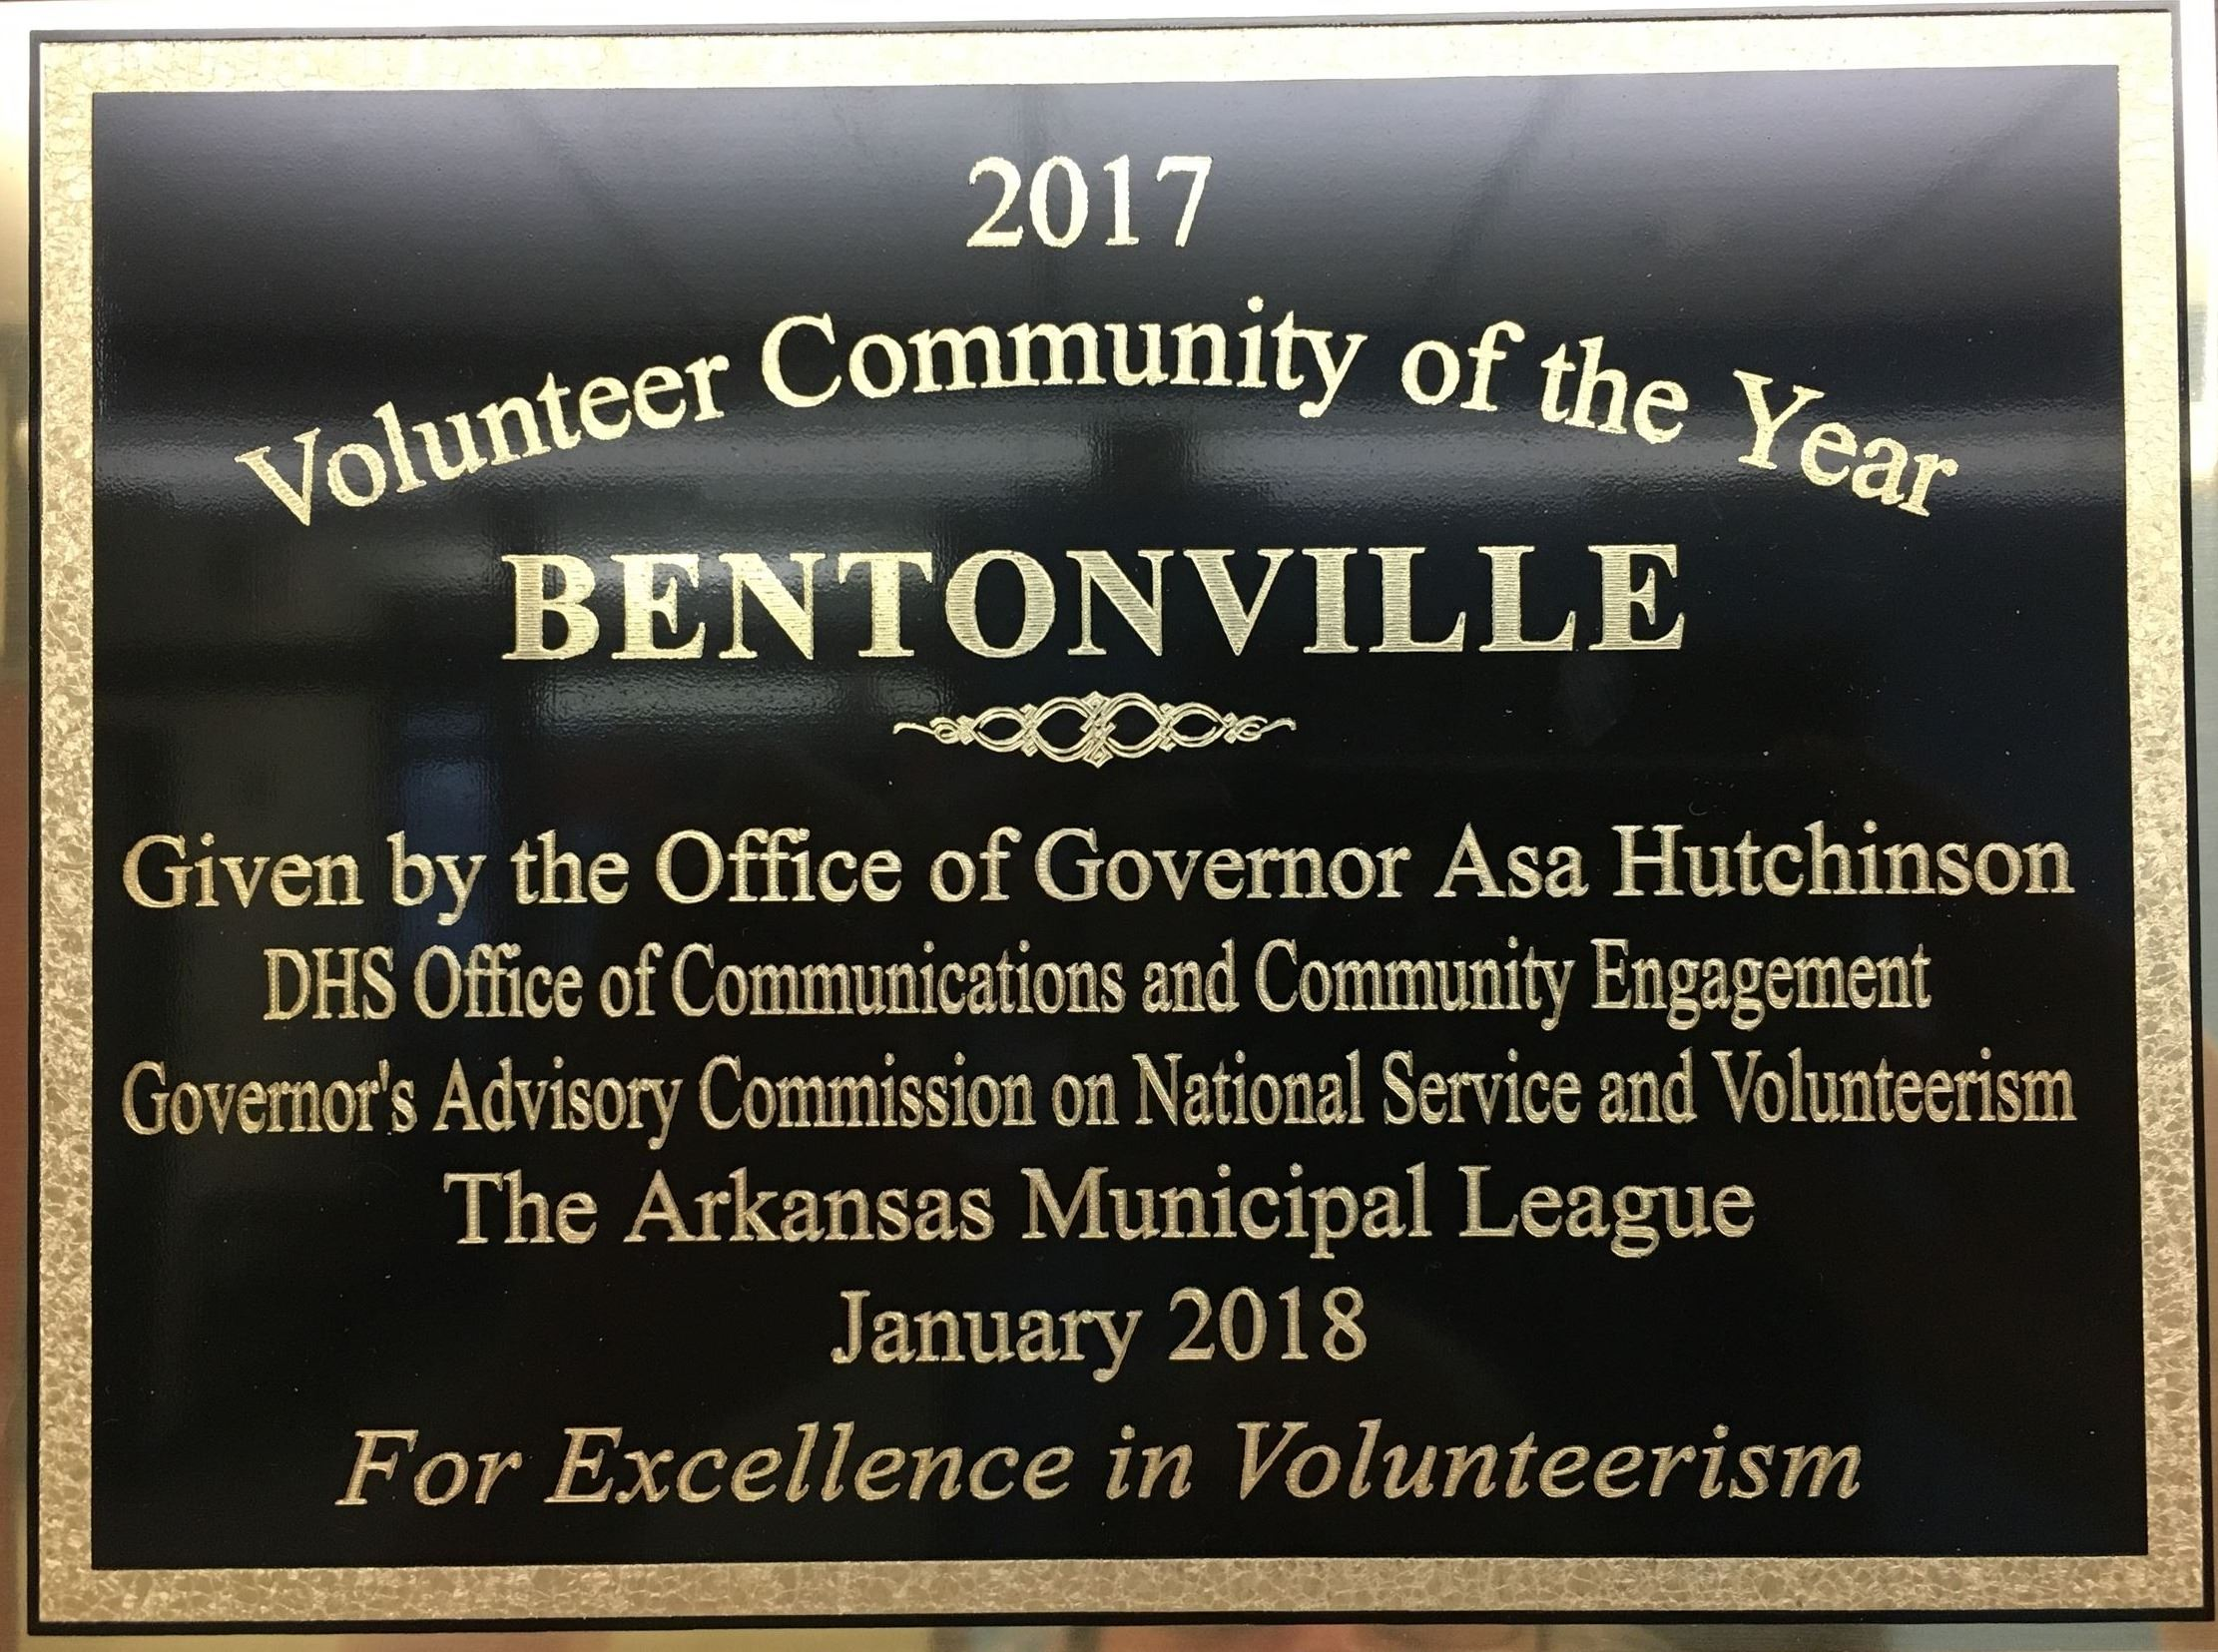 2017 Volunteer Community Award Plaque Photo